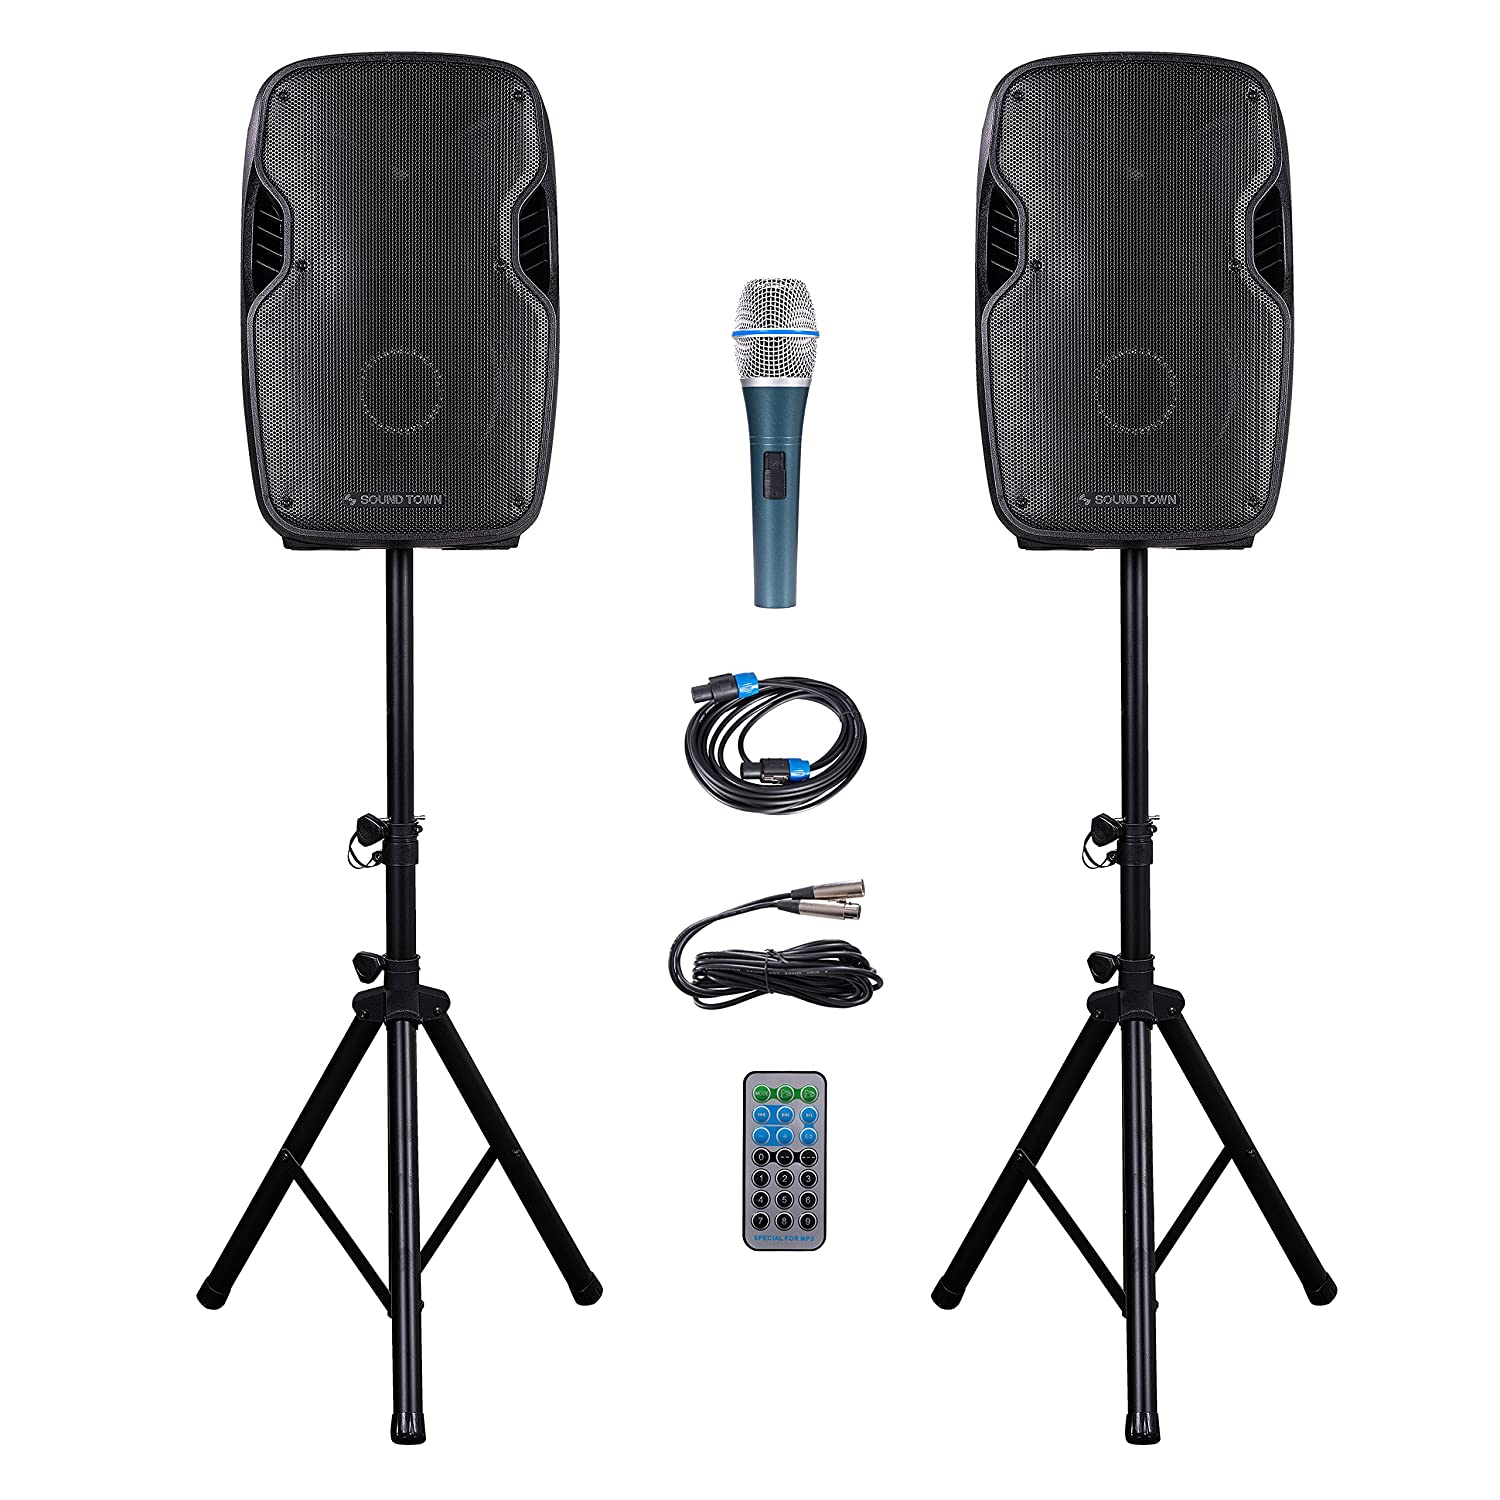 Sound Town Portable 15'' 2500 Watt 2-Way Powered PA DJ Speaker System Combo Set with Bluetooth/Onboard Equalizer/USB/SD Card Reader/LED Light/1 Mic/2 Speaker Stands, for Party, Karaoke (DEIMOS-15PSC)